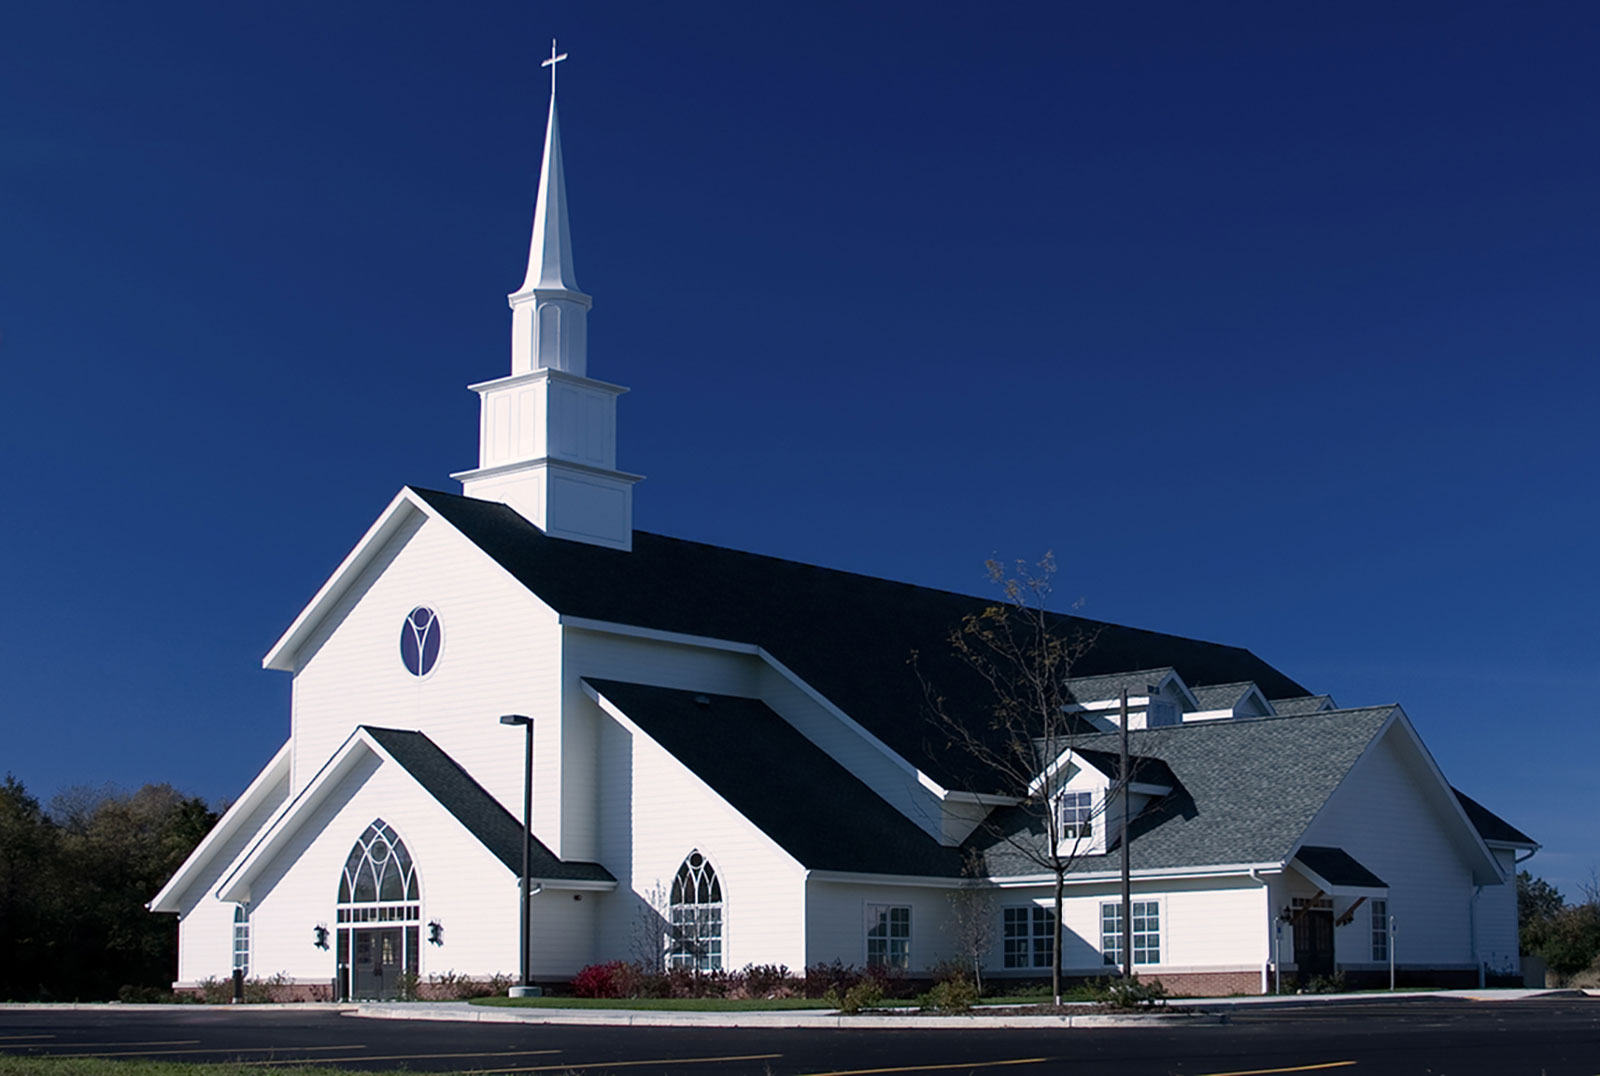 Large, white church with black roof. An all white peak is topped by a cross